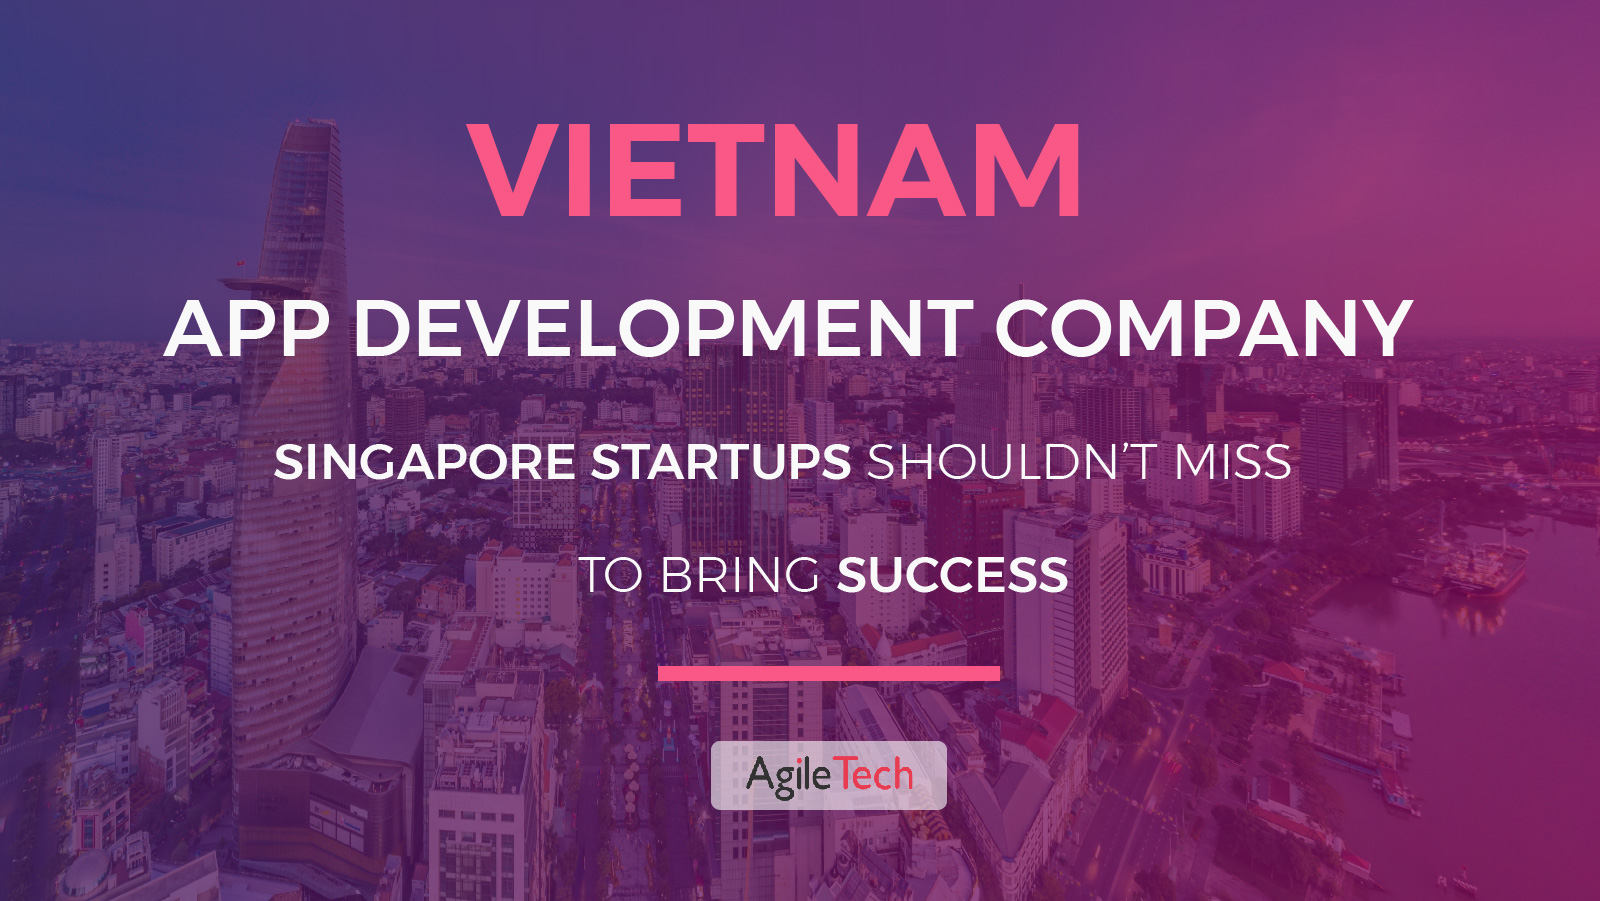 vietnam app development company singapore startups shouldn't miss to bring success